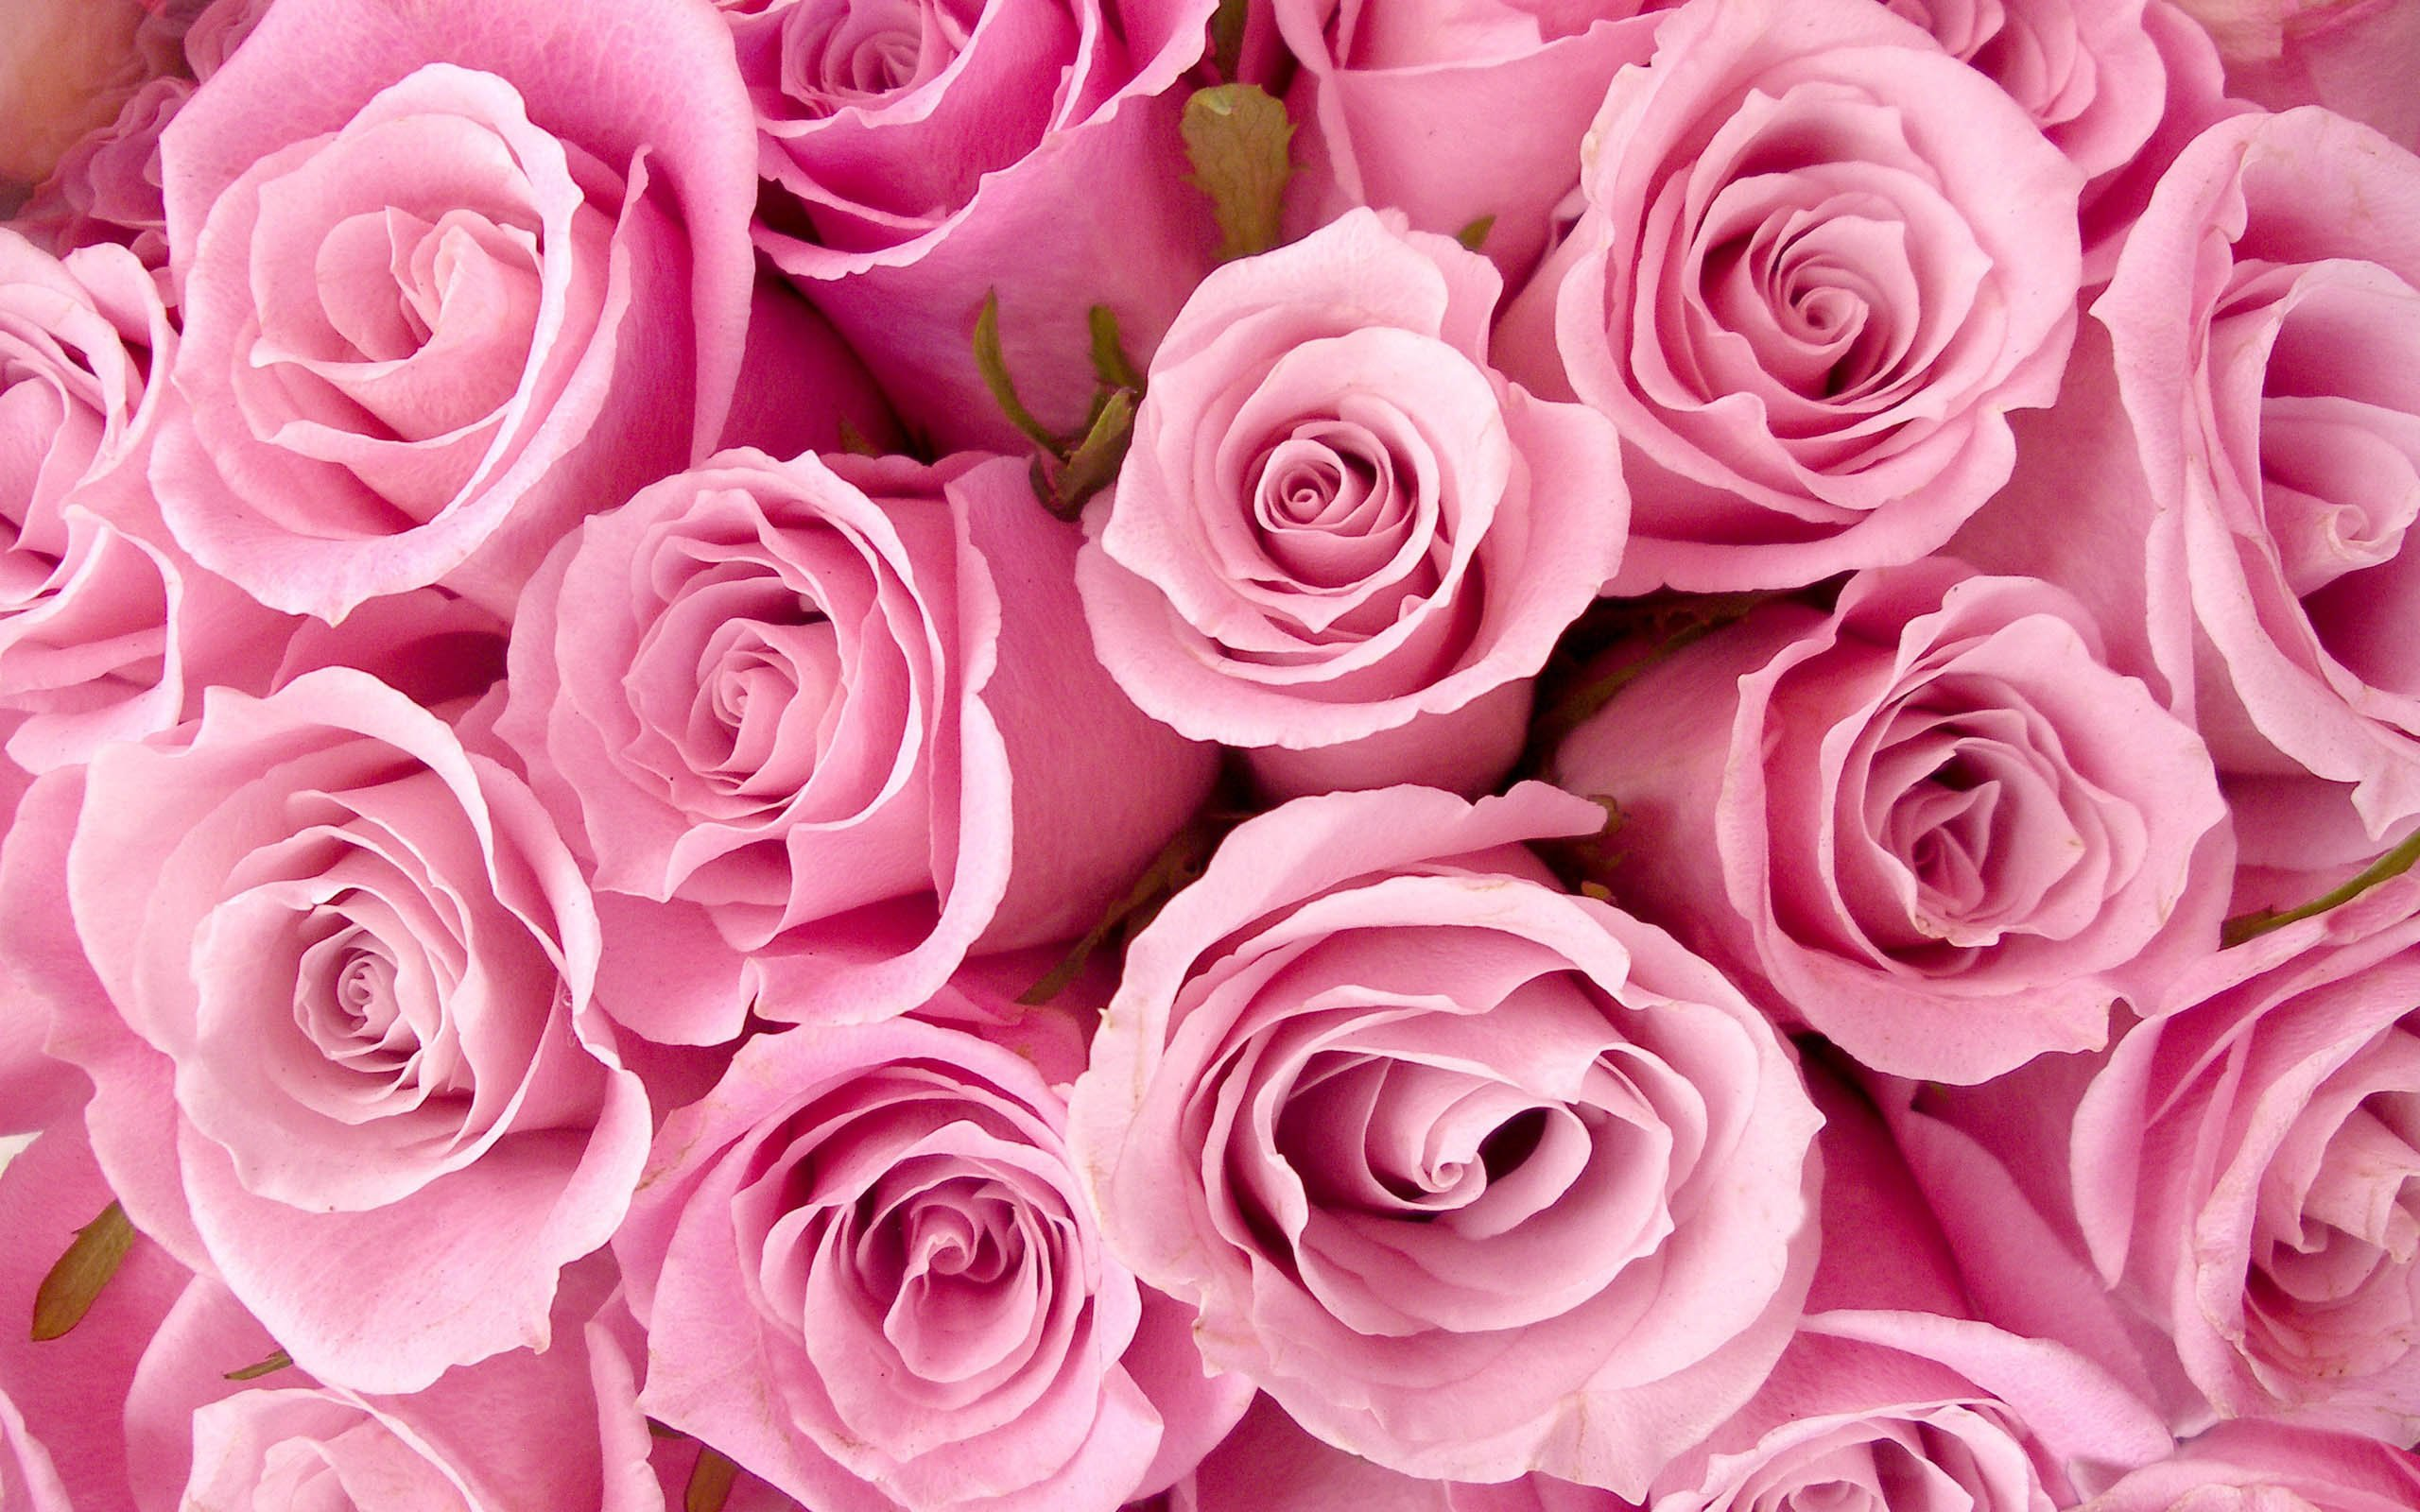 Special Pink Roses Wallpapers HD Wallpapers 2560x1600